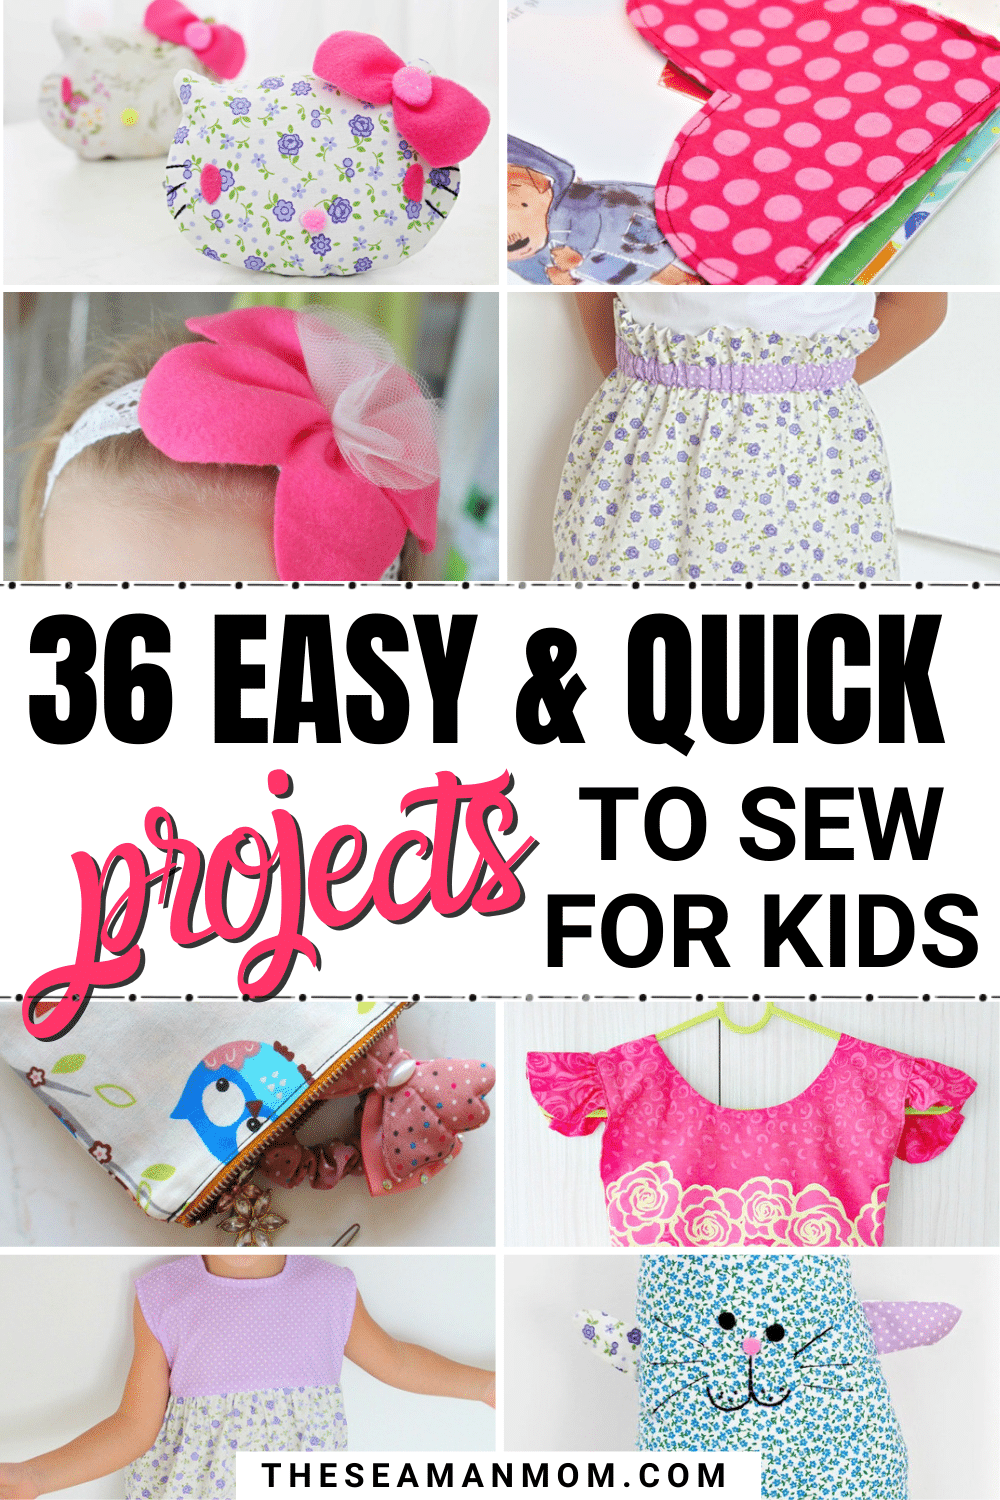 Need sewing projects for kids to make this summer? Sewing for kids is not only easy and quick but rewarding too! These awesome kids sewing ideas will help you keep your sewing skills in top shape even in busy times, like school breaks! via @petroneagu